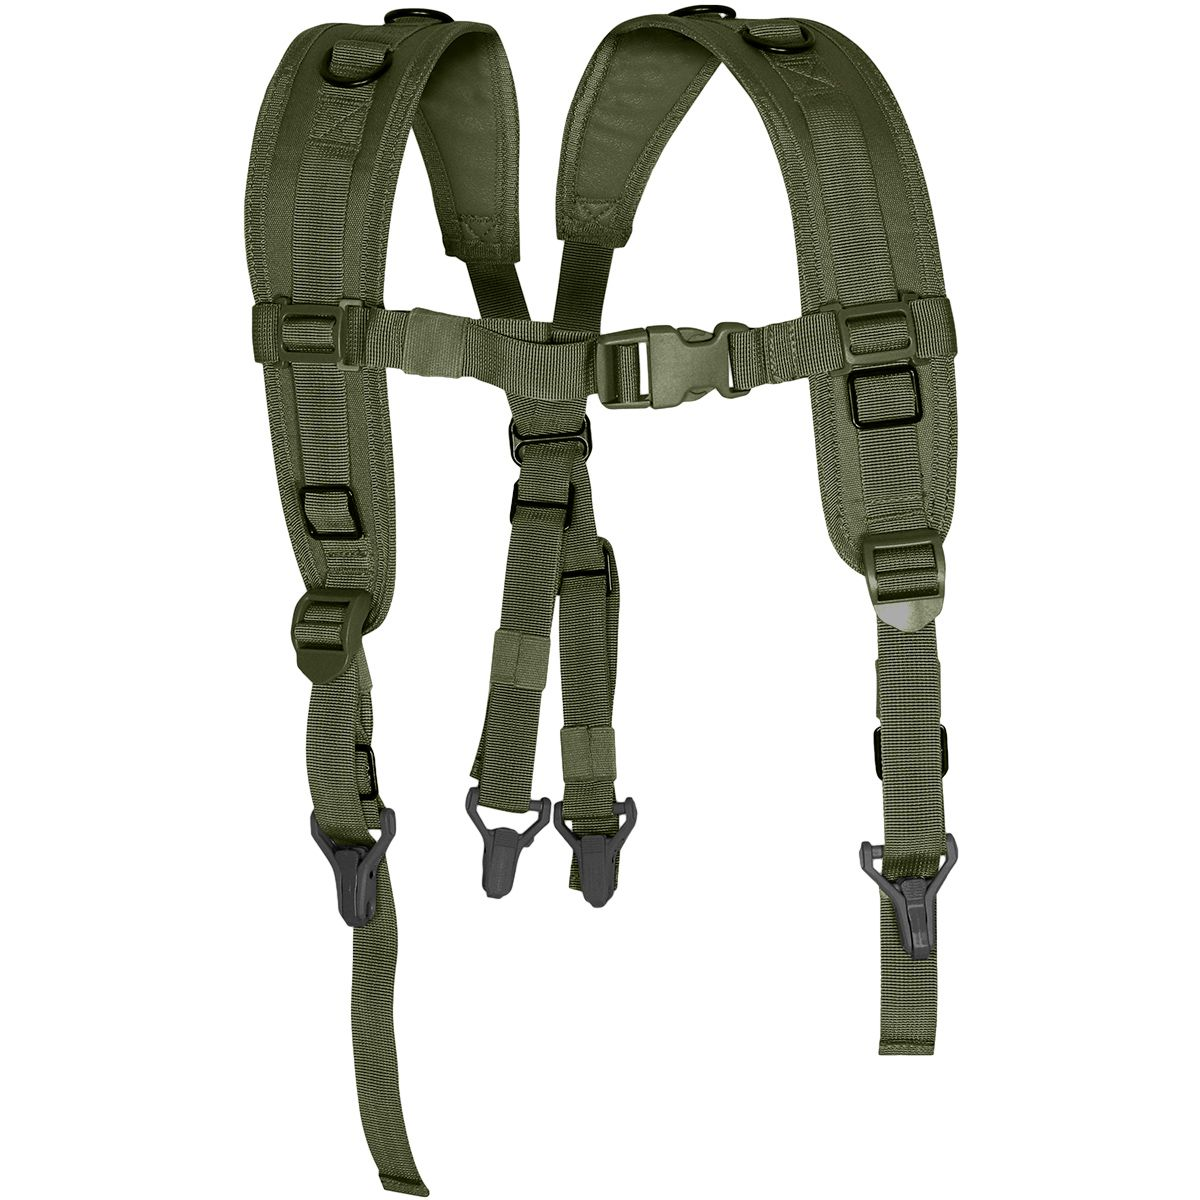 Viper Locking Harness Green | Pinterest | Suspenders, Tactical gear